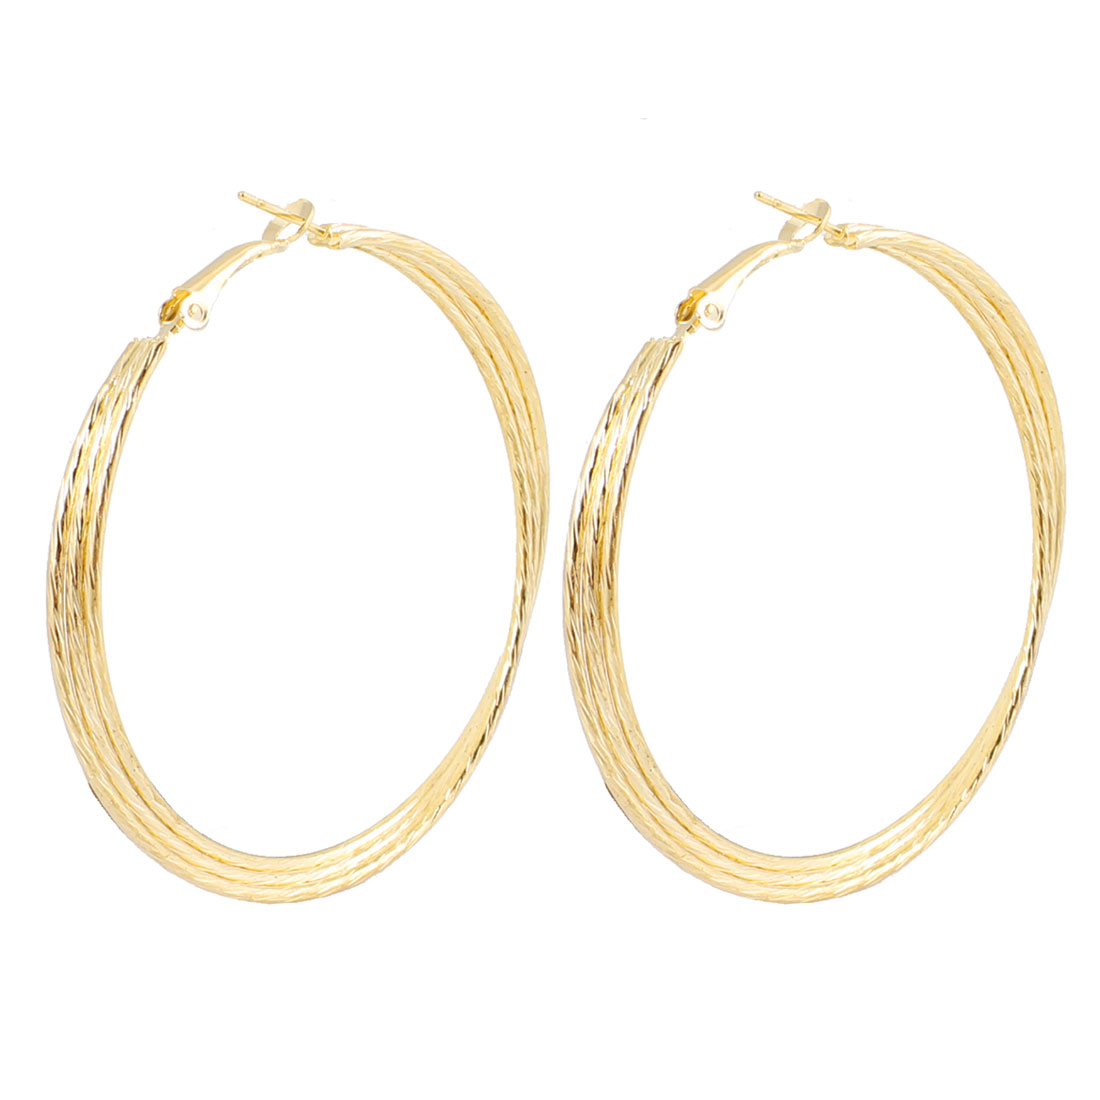 Pair Gold Tone 3 Layers Spring Hoop Earrings Earbob for Lady